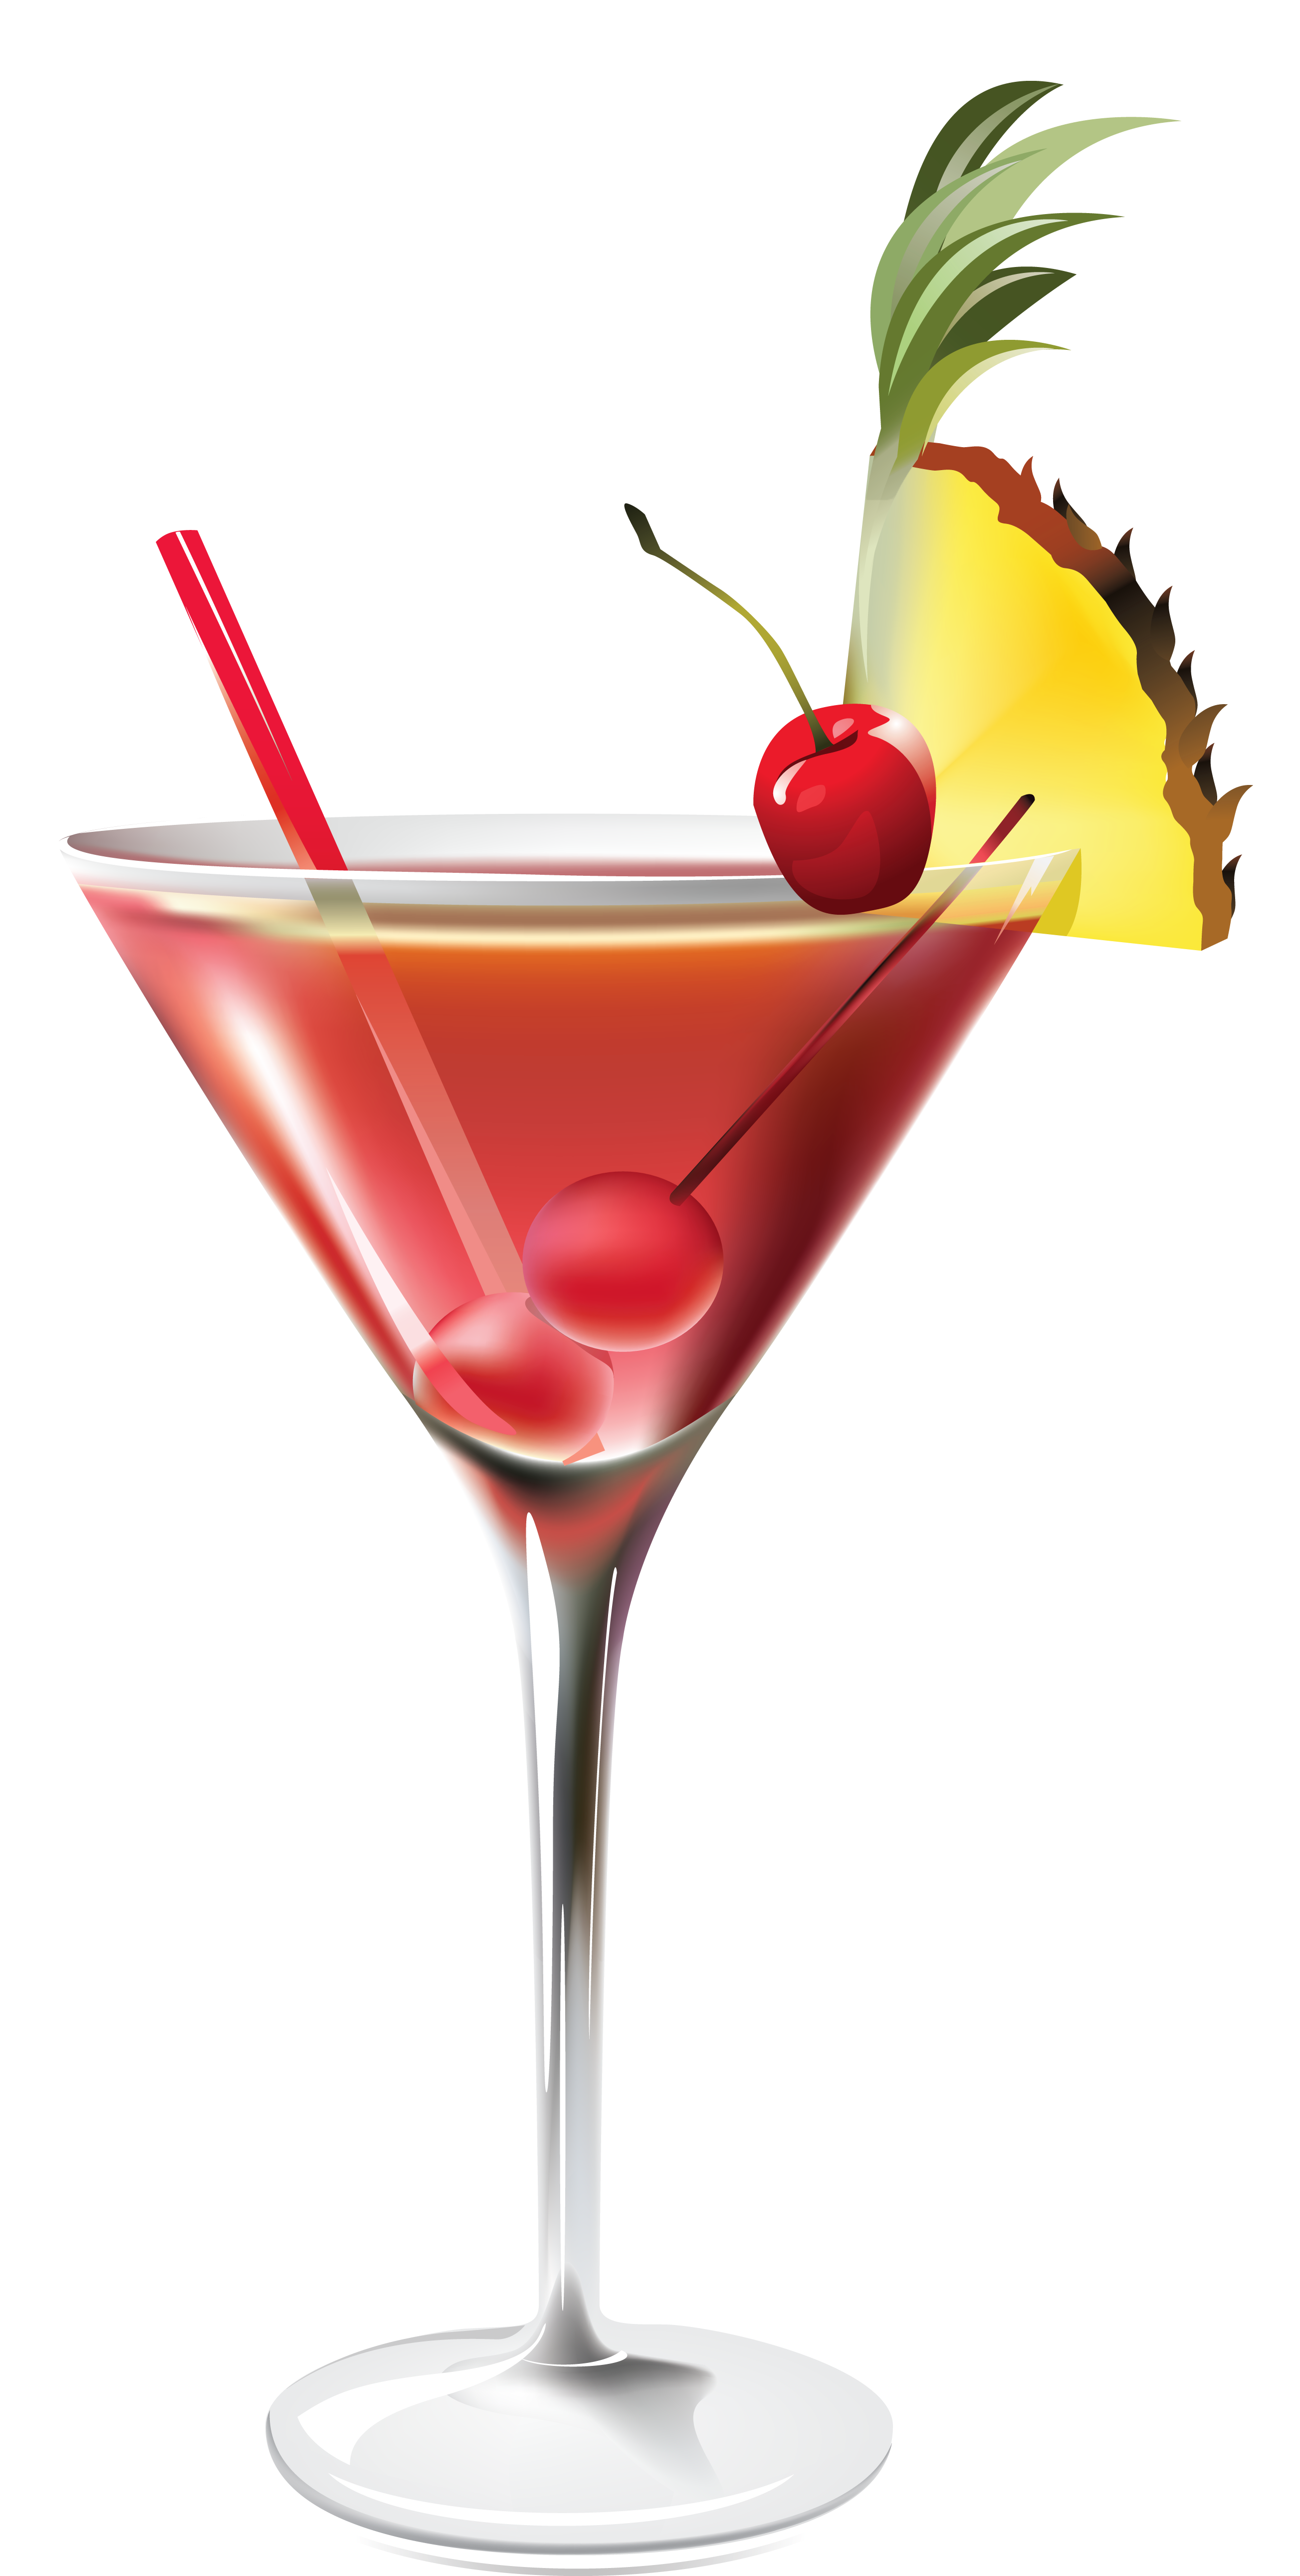 library Cocktail drawing food. Png transparent image drink